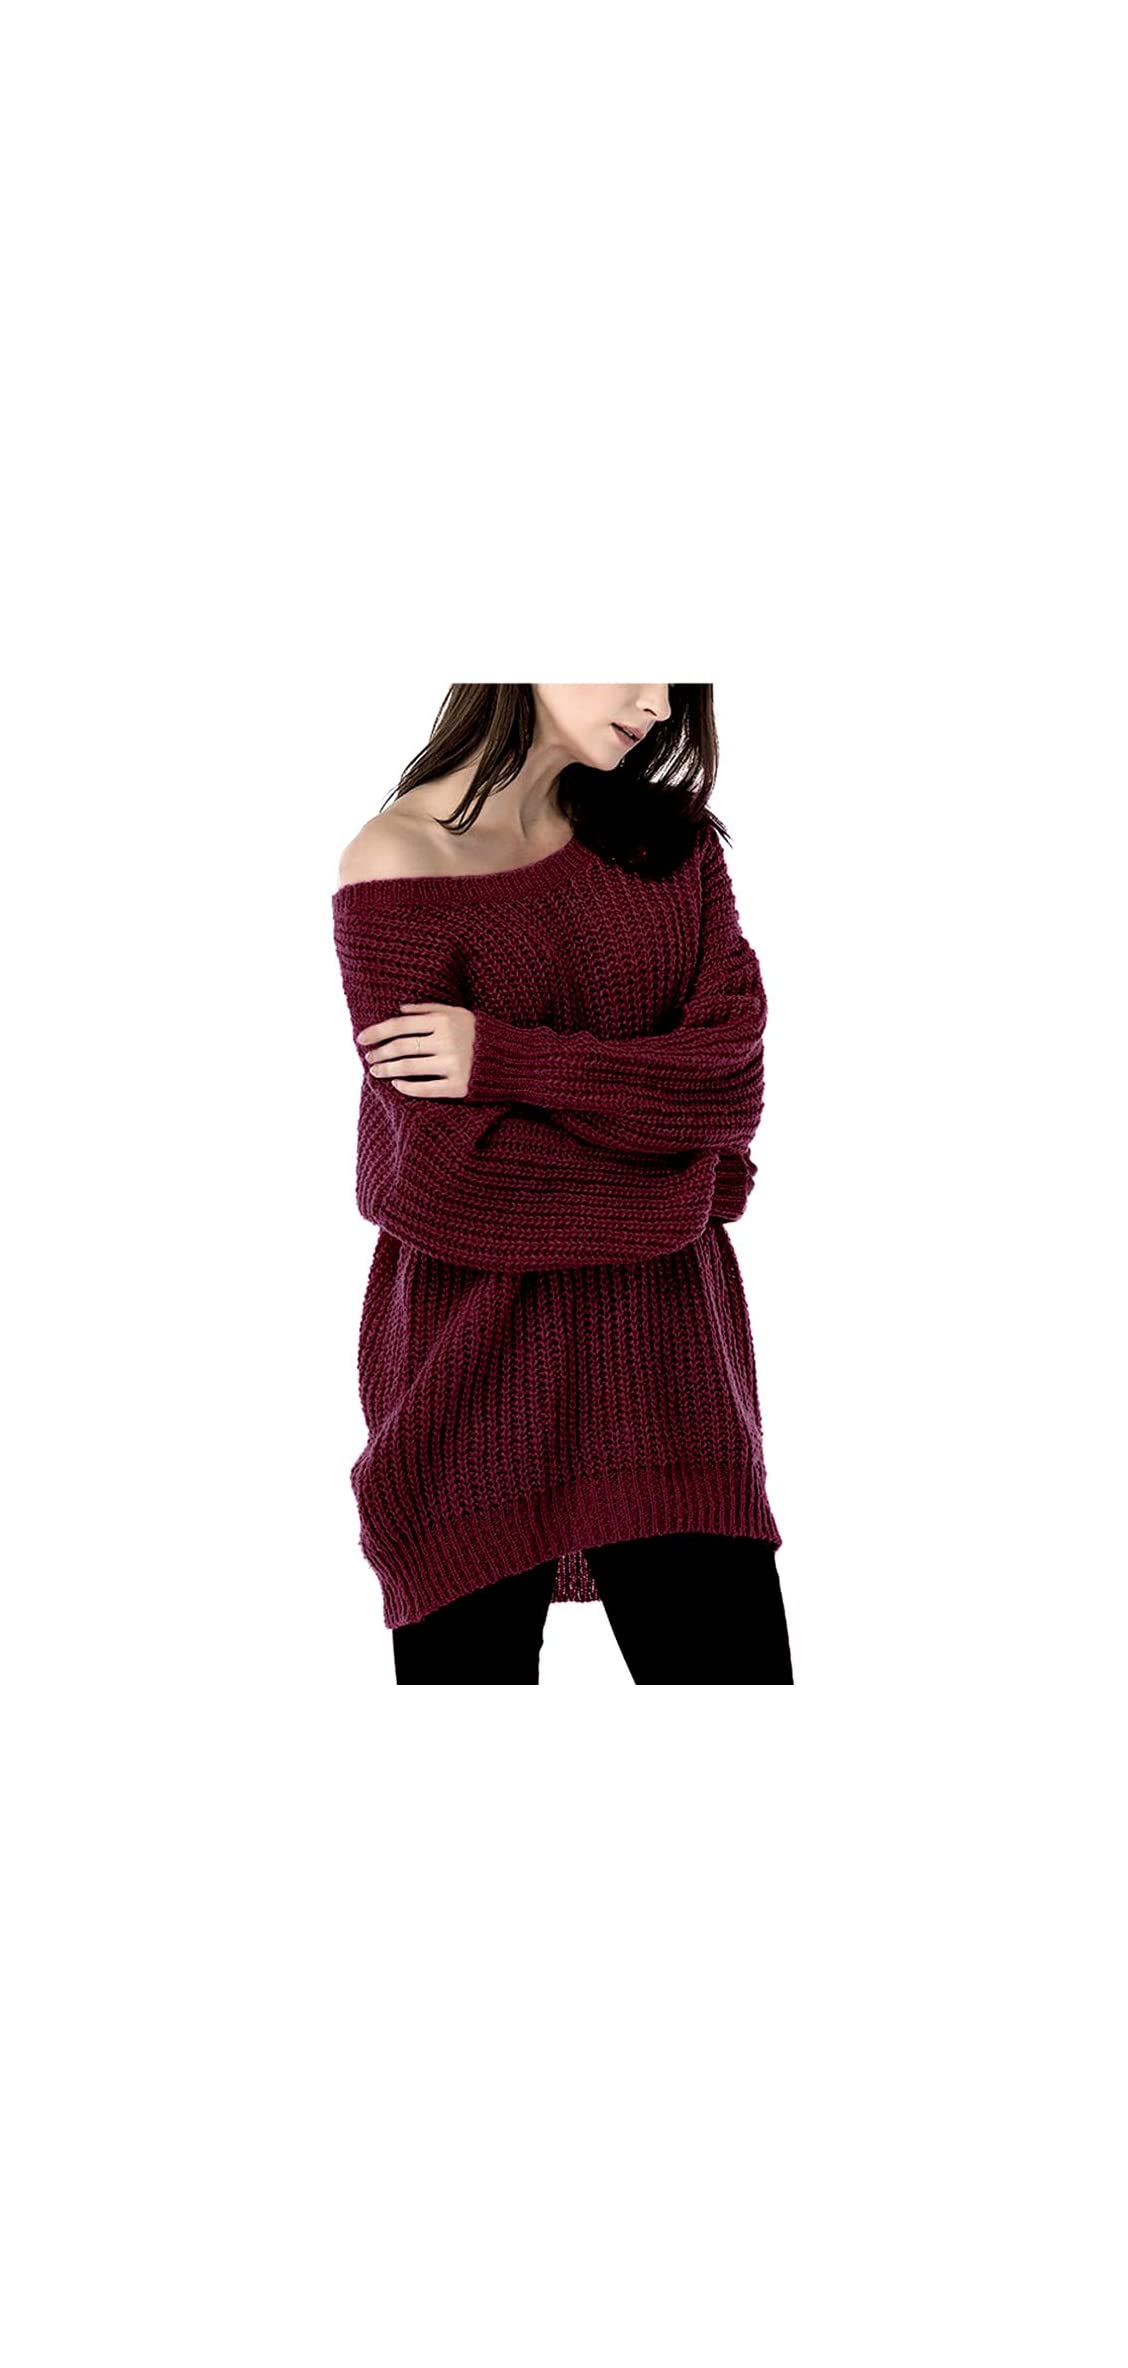 Women's Oversized Sweater Casual Loose Pullover Knit